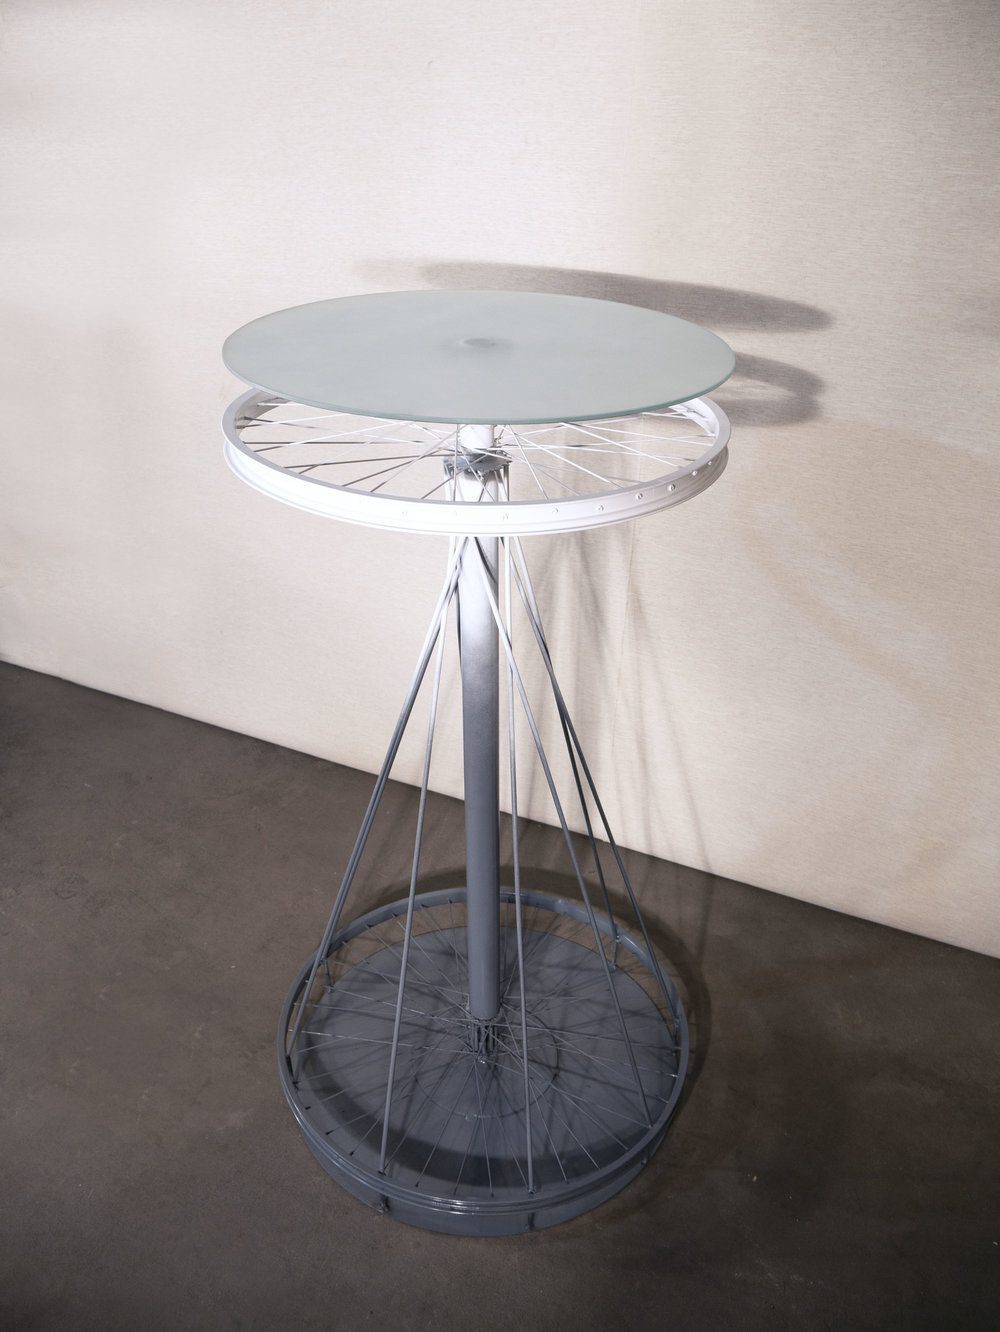 Table of Wheels